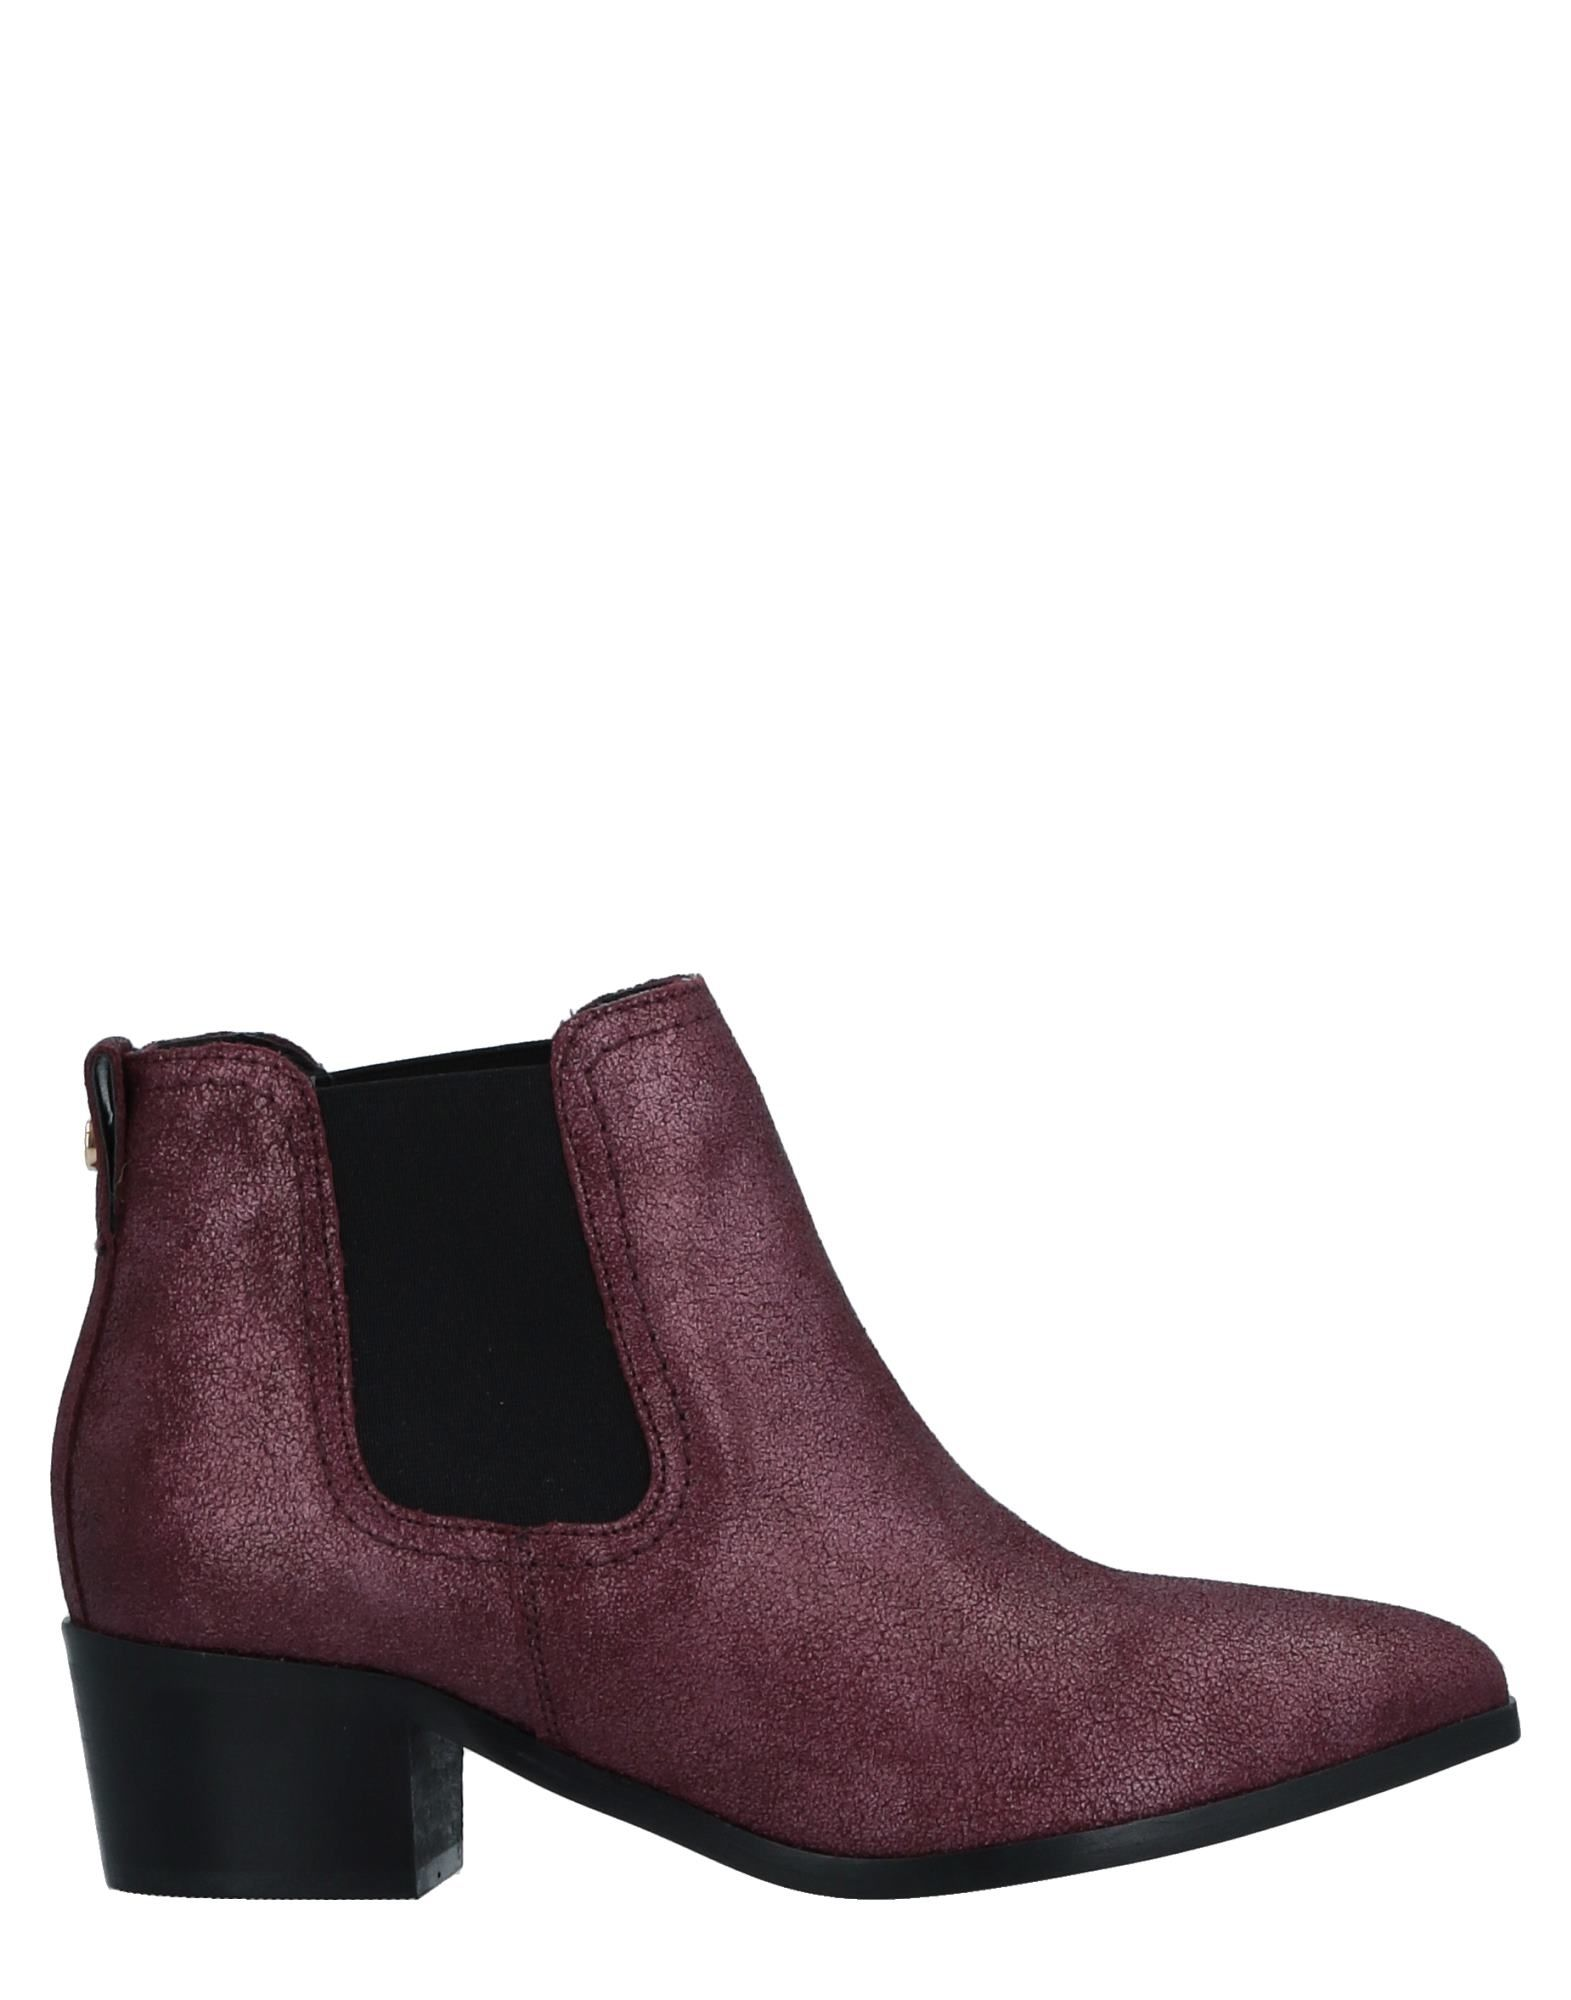 Eye Ankle Boot Boots - Women Eye Ankle Boots Boot online on  Australia - 11285925LO 52bbb3